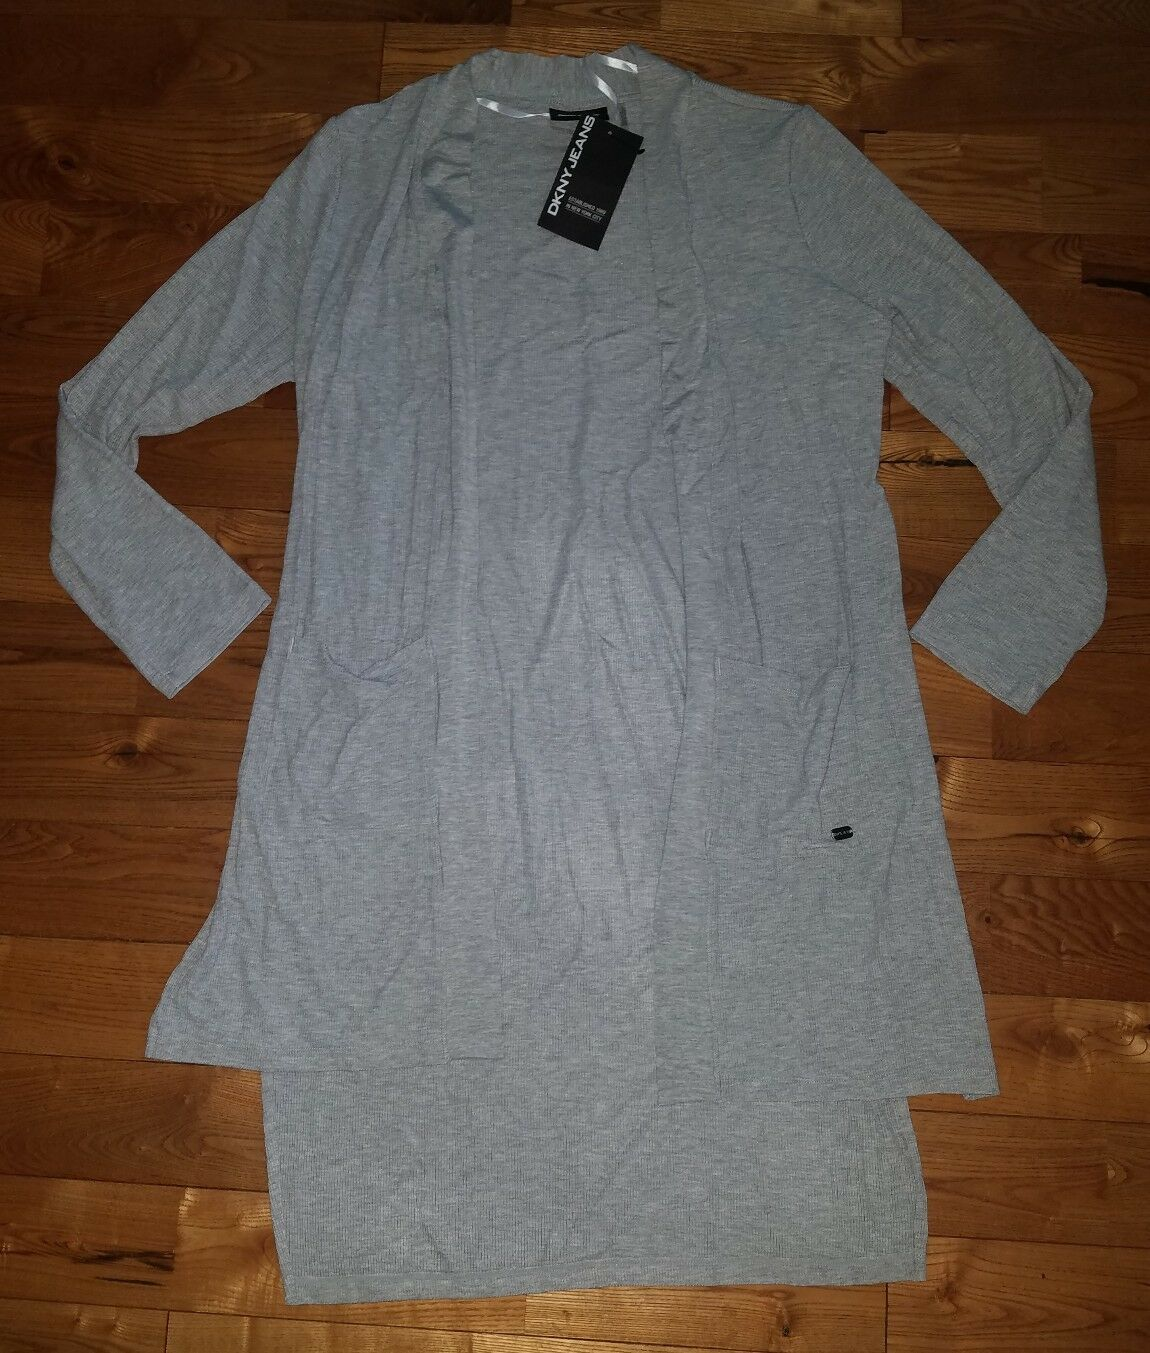 NWT Women's Grey DKNY Ribbed Open Front Stretchy Light Weight Cardigan Size L